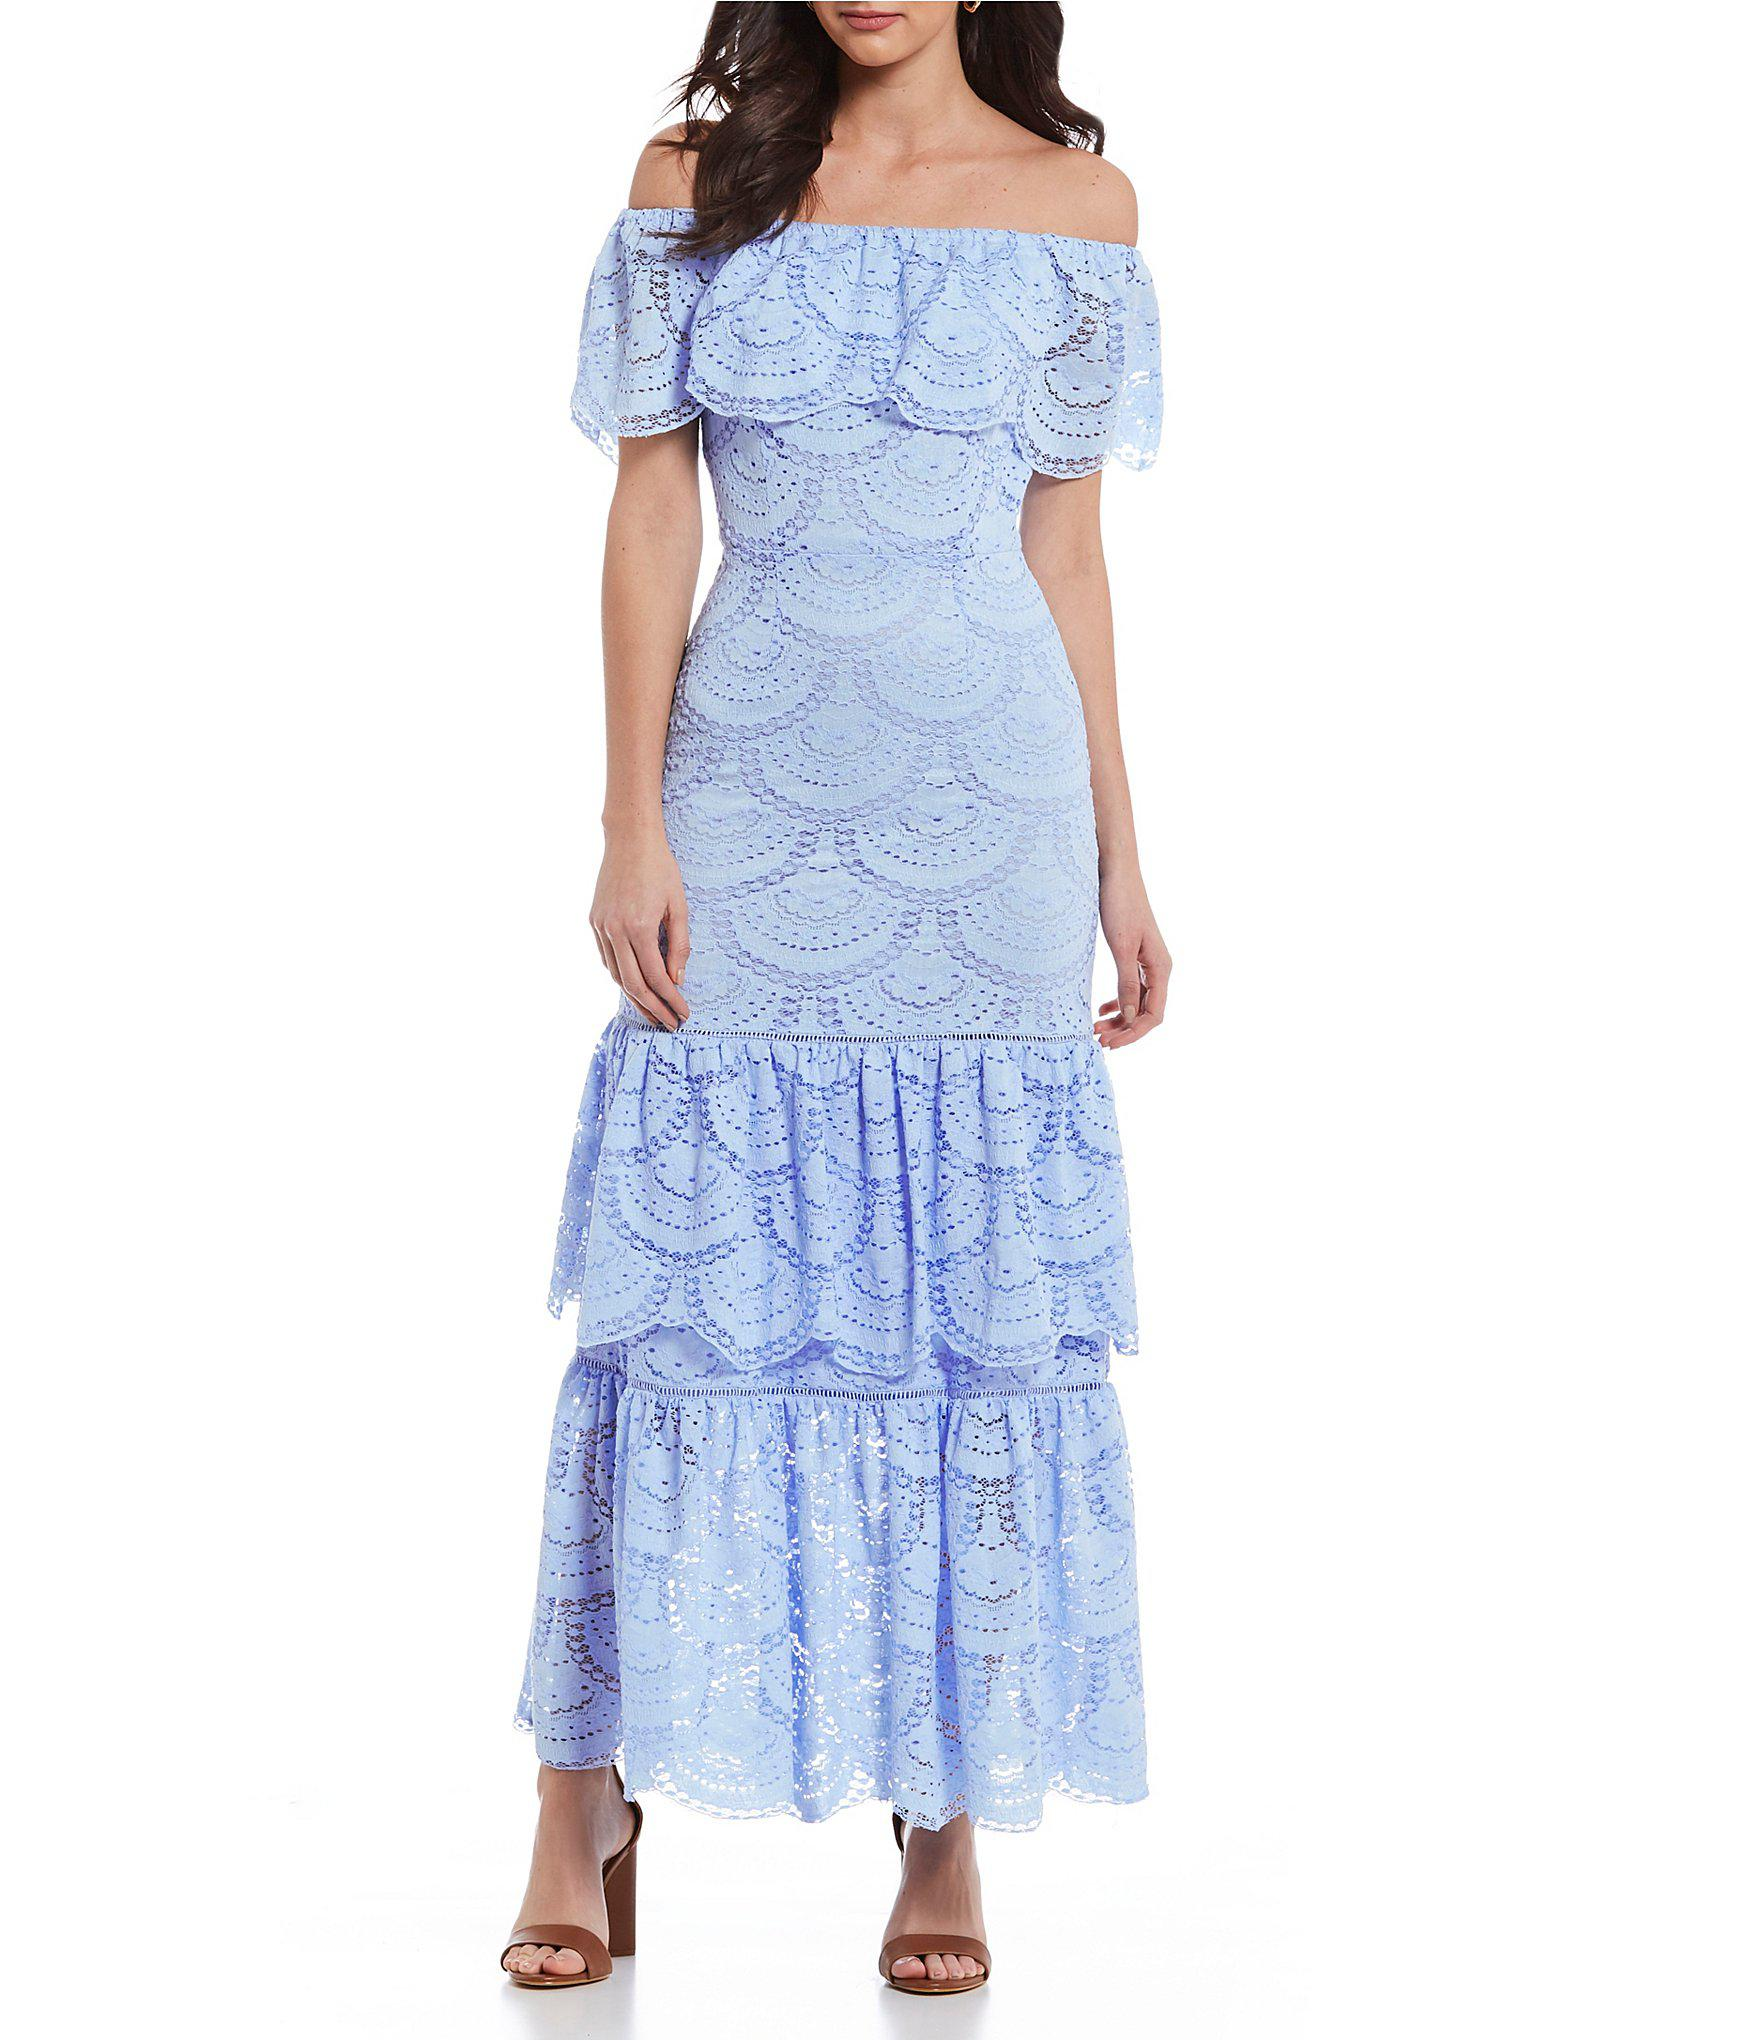 090cfa9f44 Gianni Bini Laney Off-the-shoulder Tiered Lace Maxi Dress in Blue - Lyst